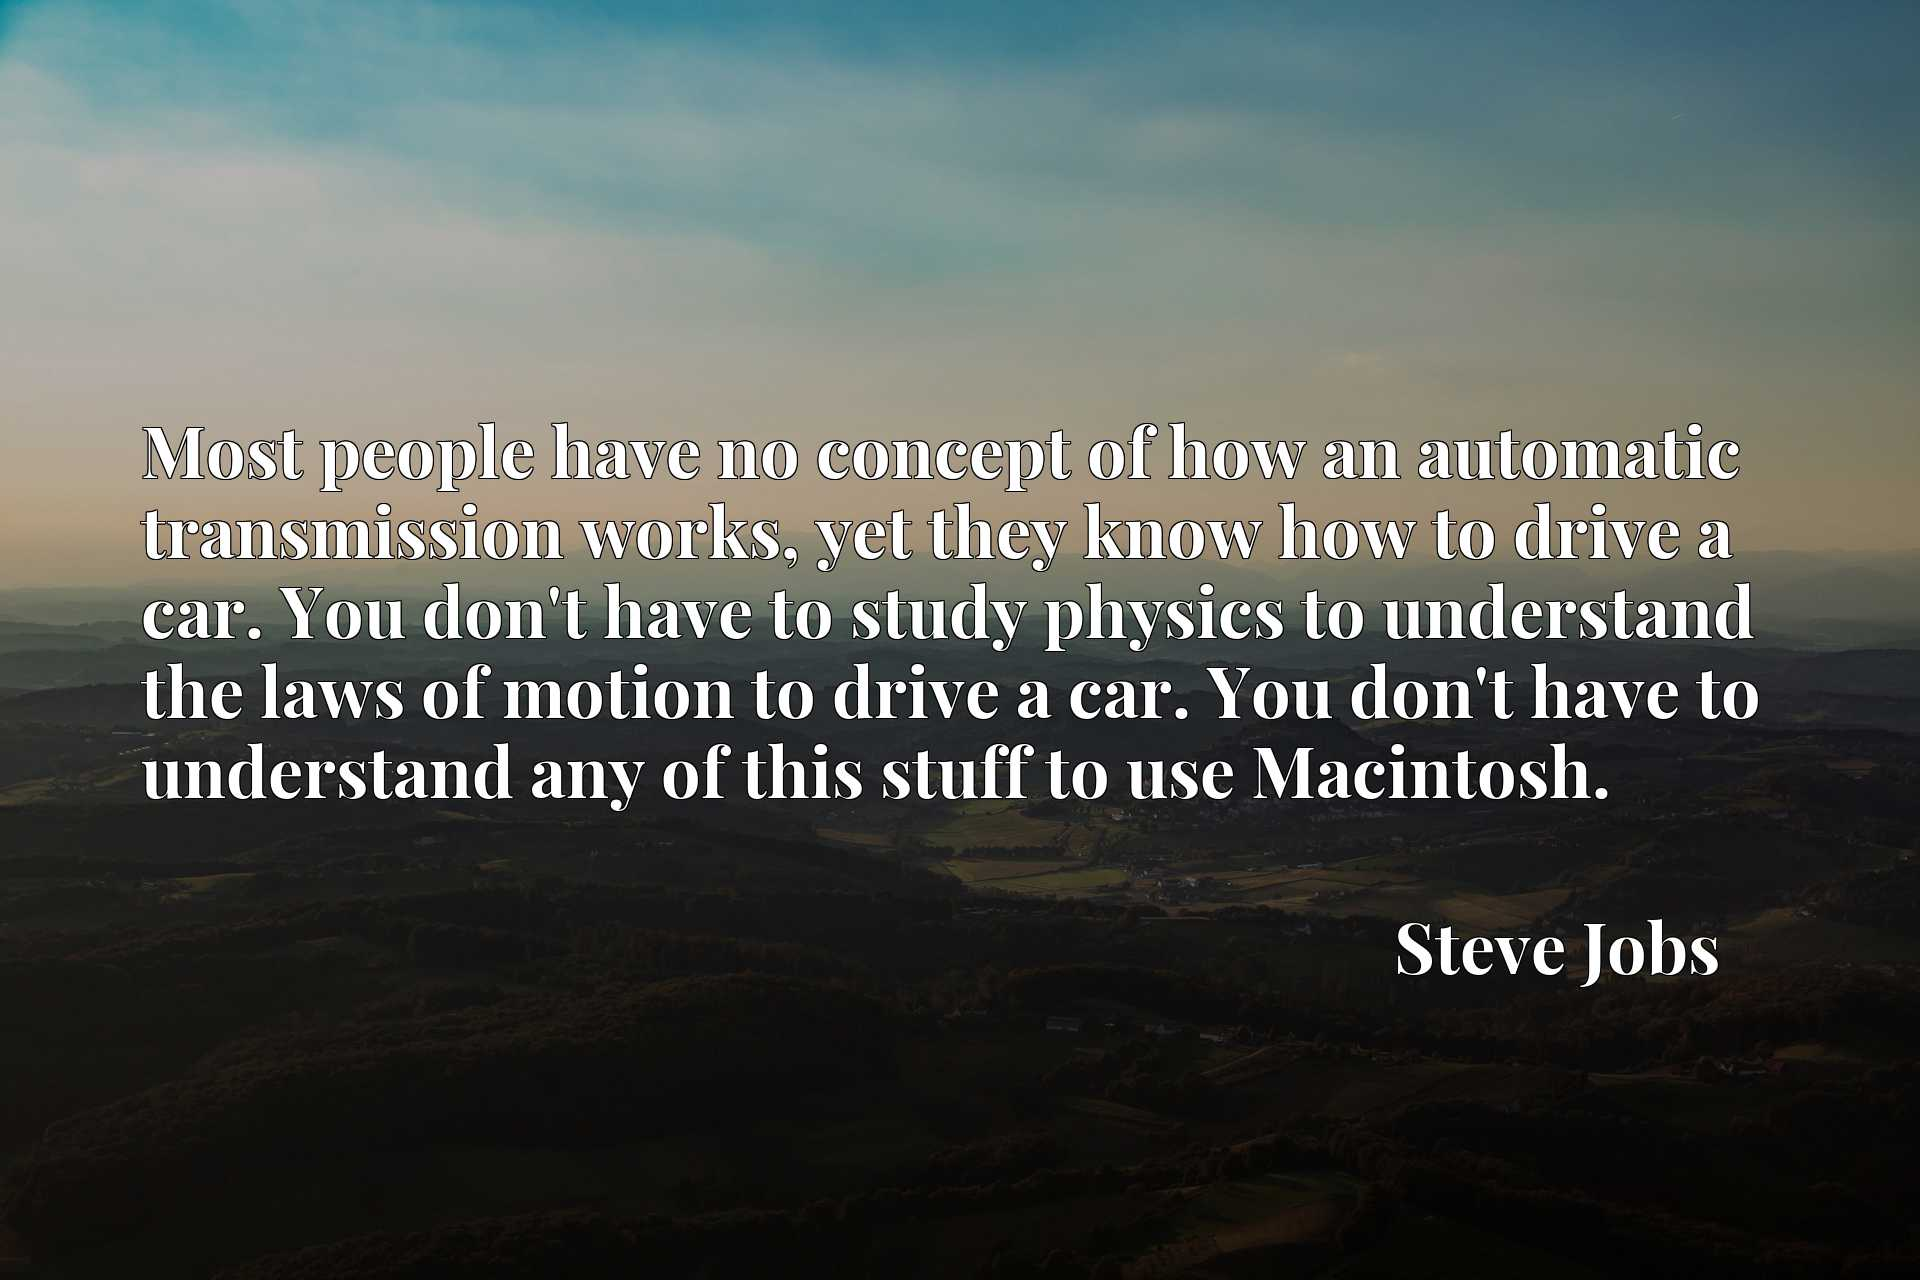 Most people have no concept of how an automatic transmission works, yet they know how to drive a car. You don't have to study physics to understand the laws of motion to drive a car. You don't have to understand any of this stuff to use Macintosh.